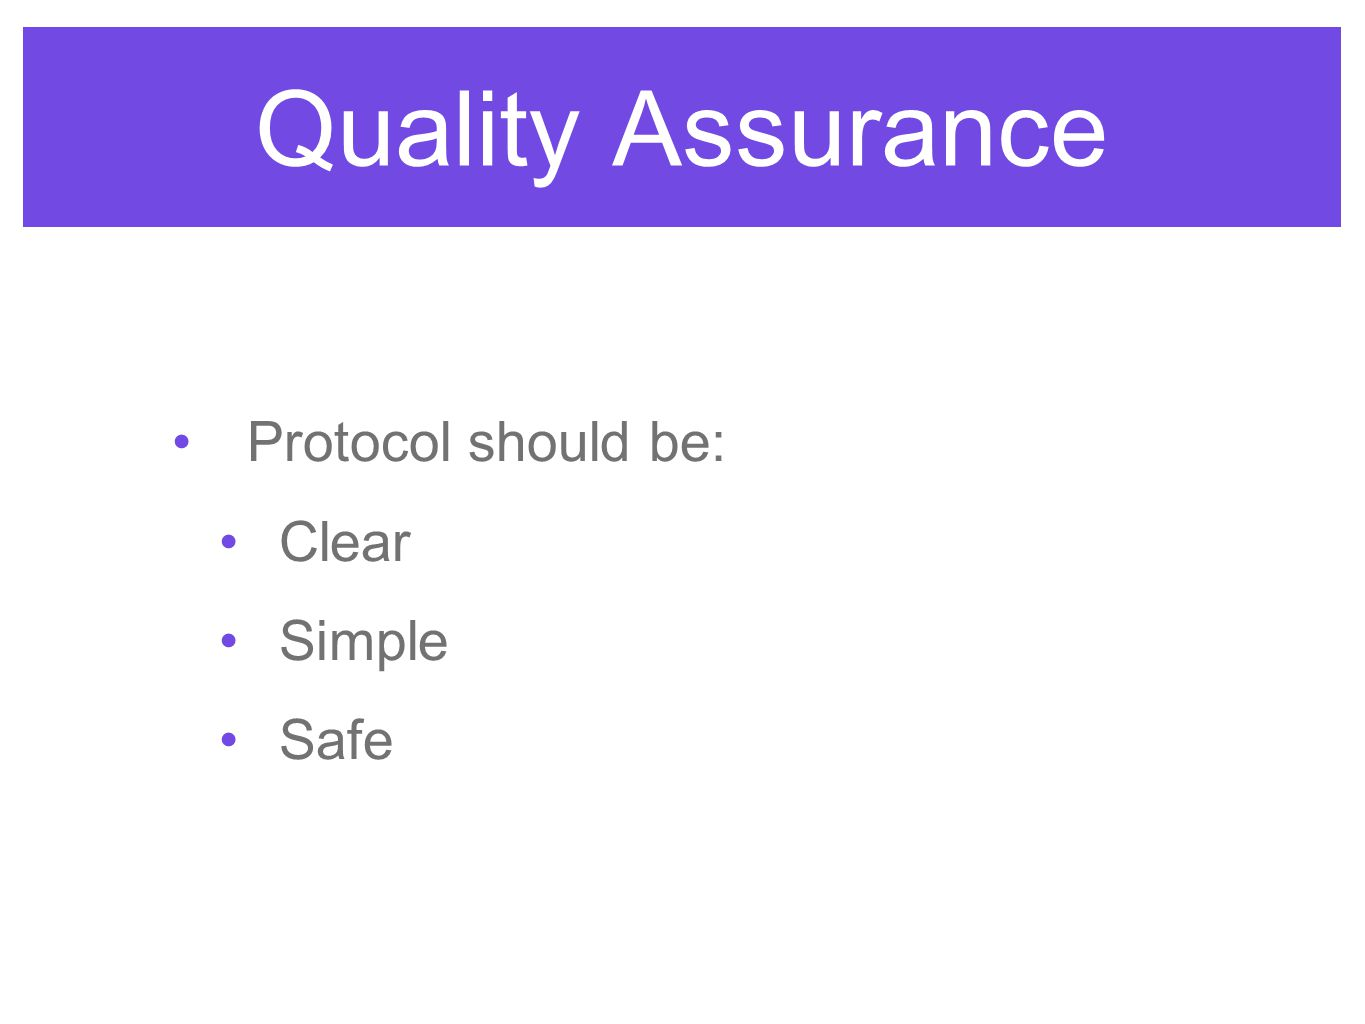 Quality Assurance Protocol should be: Clear Simple Safe